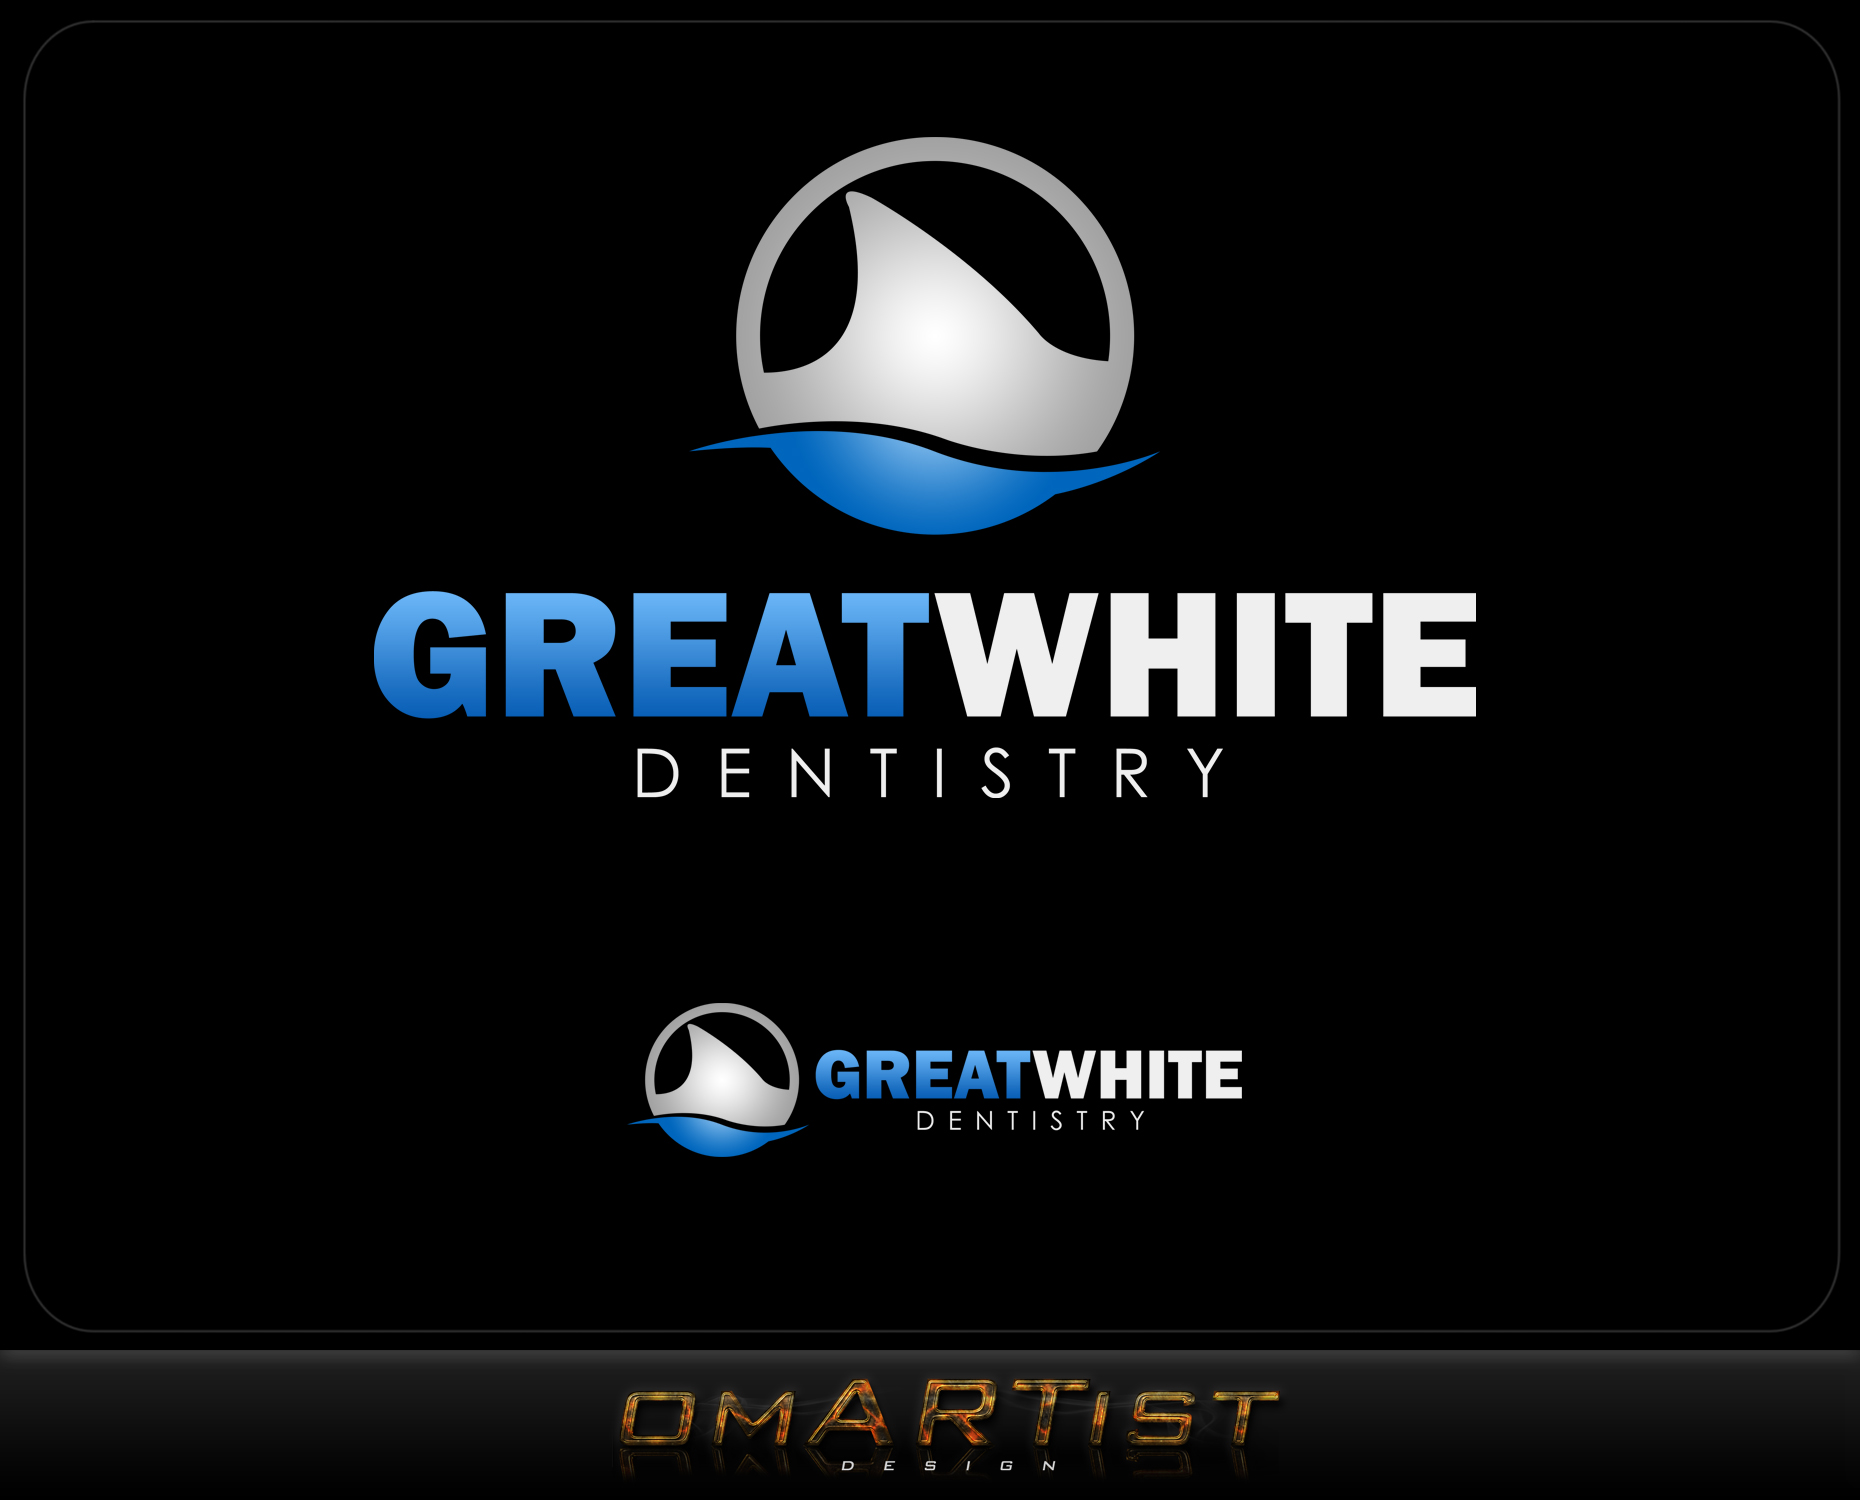 Logo Design by omARTist - Entry No. 115 in the Logo Design Contest Logo Design for Great White Dentistry.